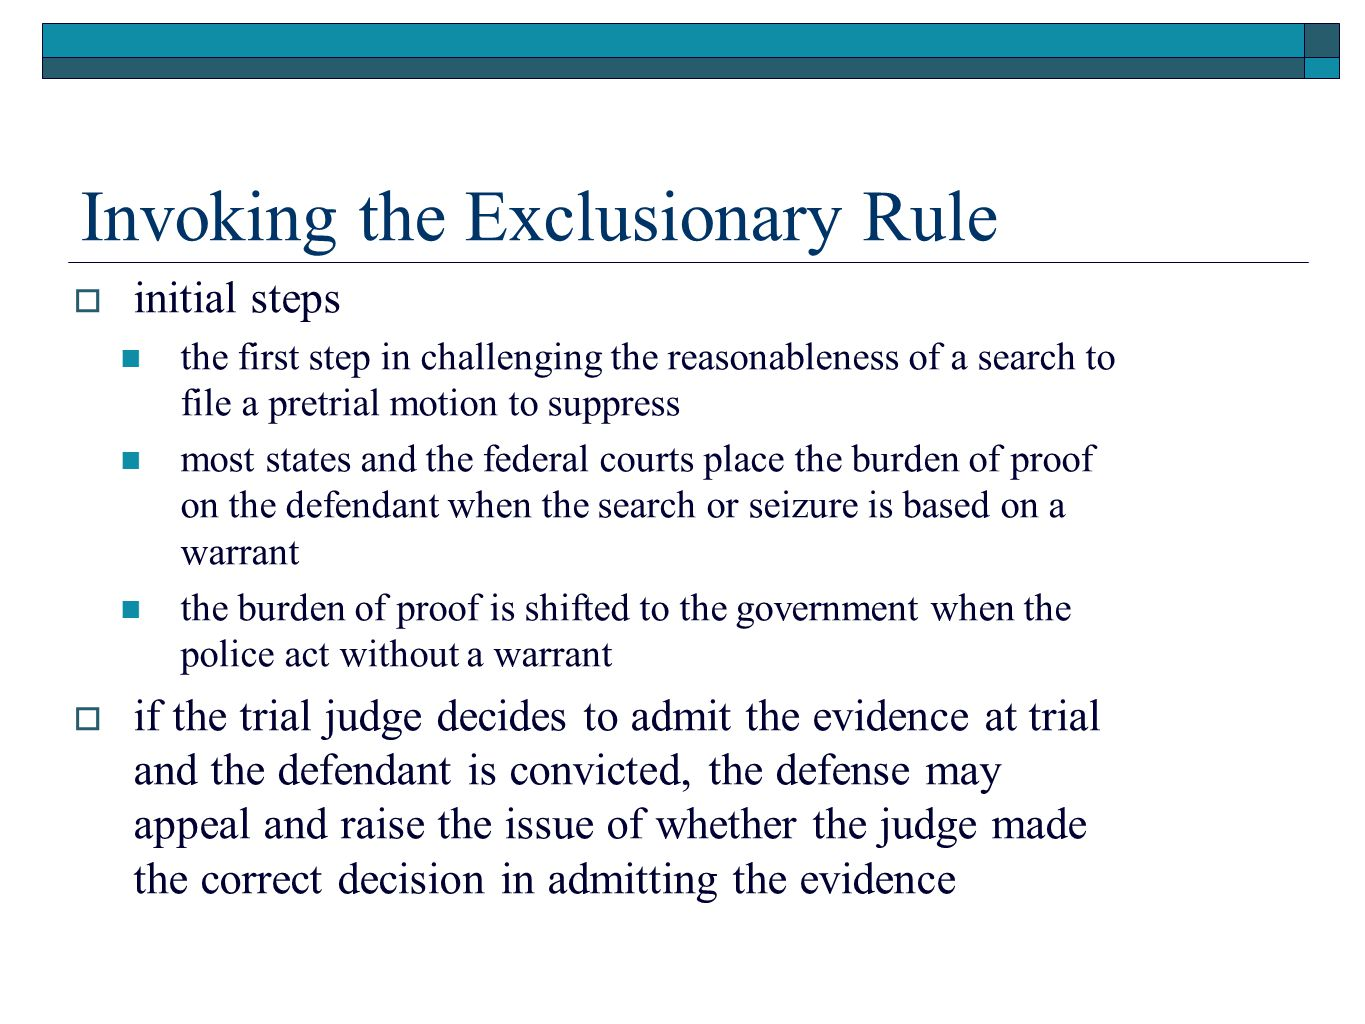 Invoking the Exclusionary Rule  initial steps the first step in challenging the reasonableness of a search to file a pretrial motion to suppress most states and the federal courts place the burden of proof on the defendant when the search or seizure is based on a warrant the burden of proof is shifted to the government when the police act without a warrant  if the trial judge decides to admit the evidence at trial and the defendant is convicted, the defense may appeal and raise the issue of whether the judge made the correct decision in admitting the evidence